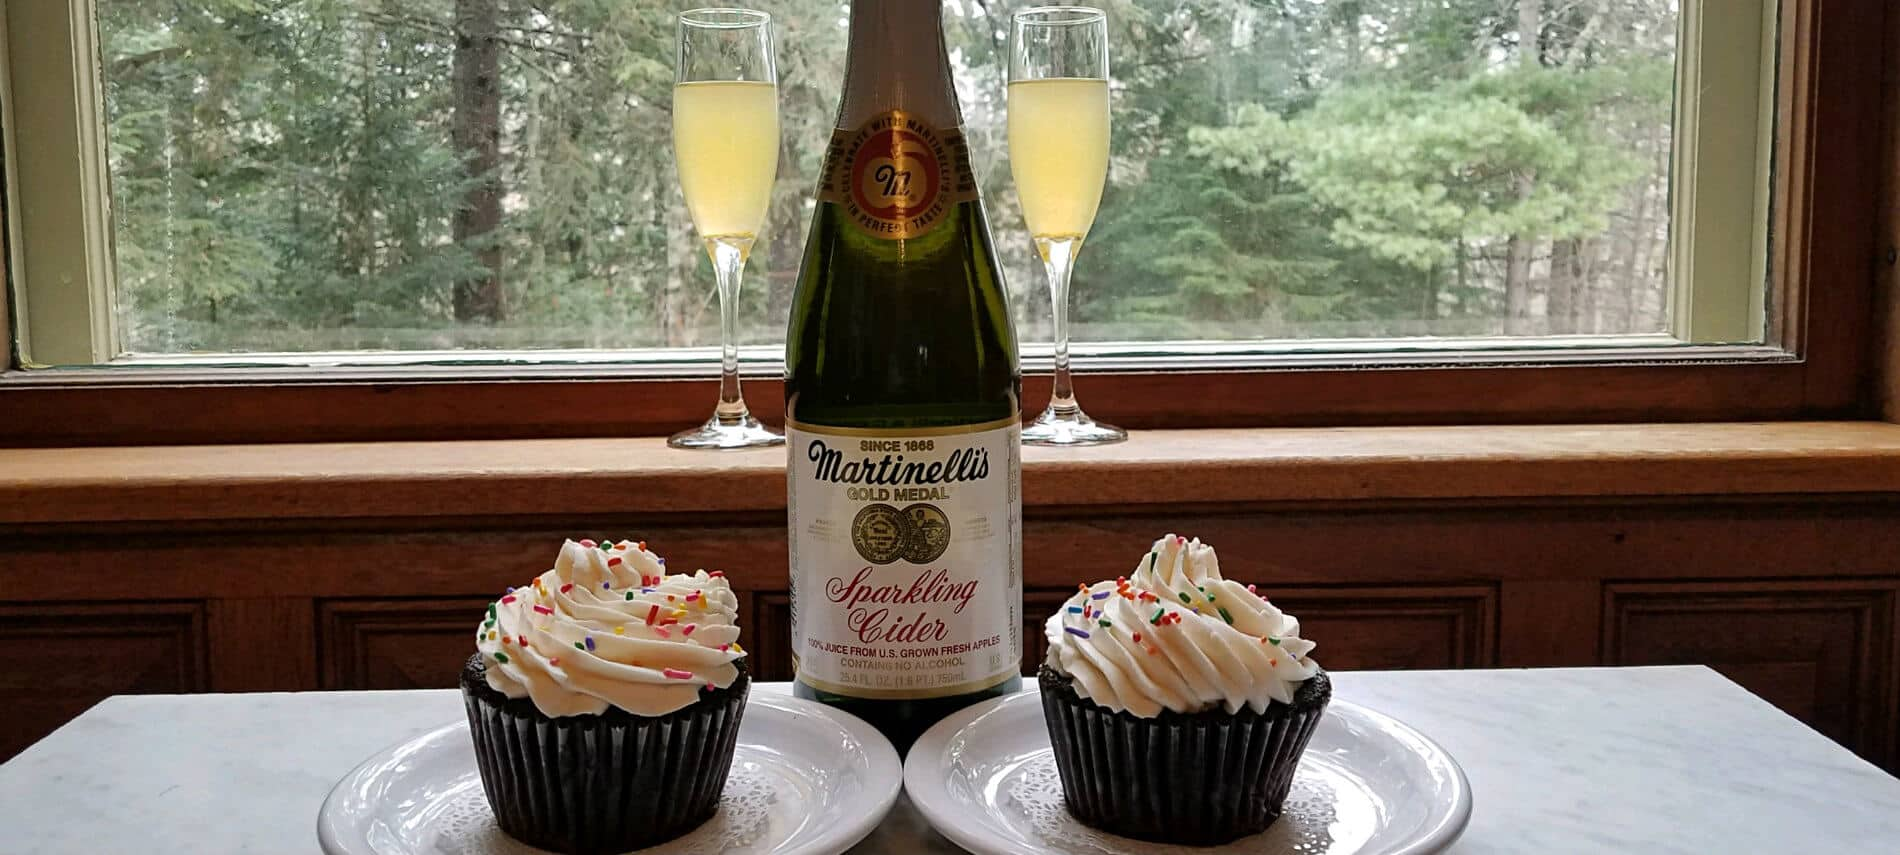 Two champagne glasses and bottle of sparkling cider and two cupcakes with sprinkles in front of a window overlooking trees